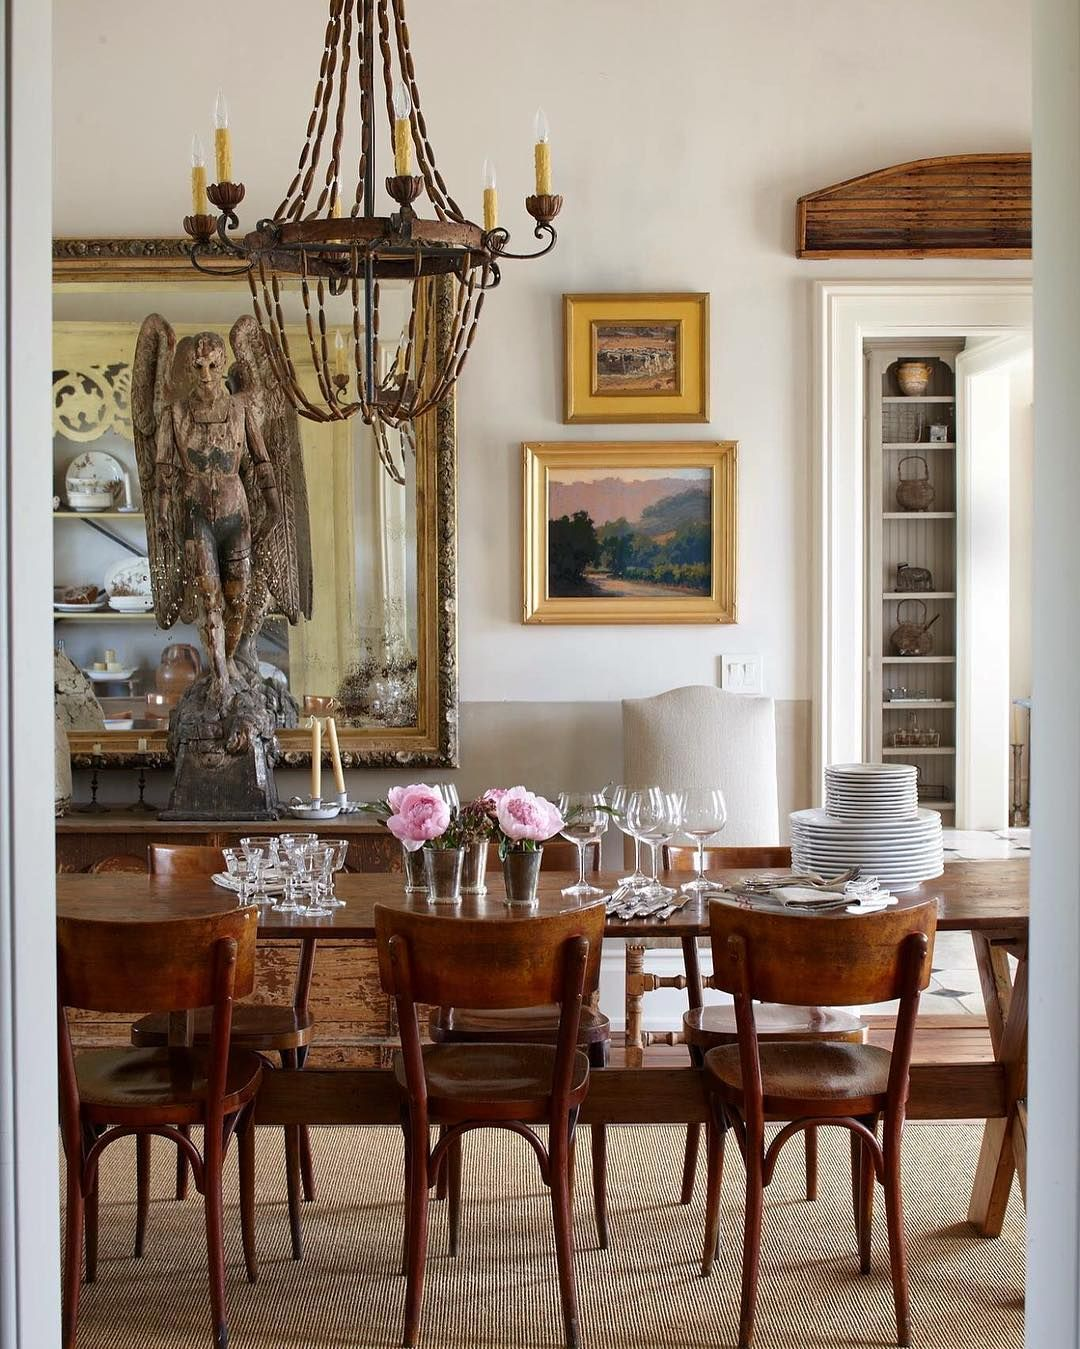 Eclectic Sonoma Dining Room With Massive Gilt Mirror 18th C Angel Dining Table In Kitchen Classic Decor Home N Decor